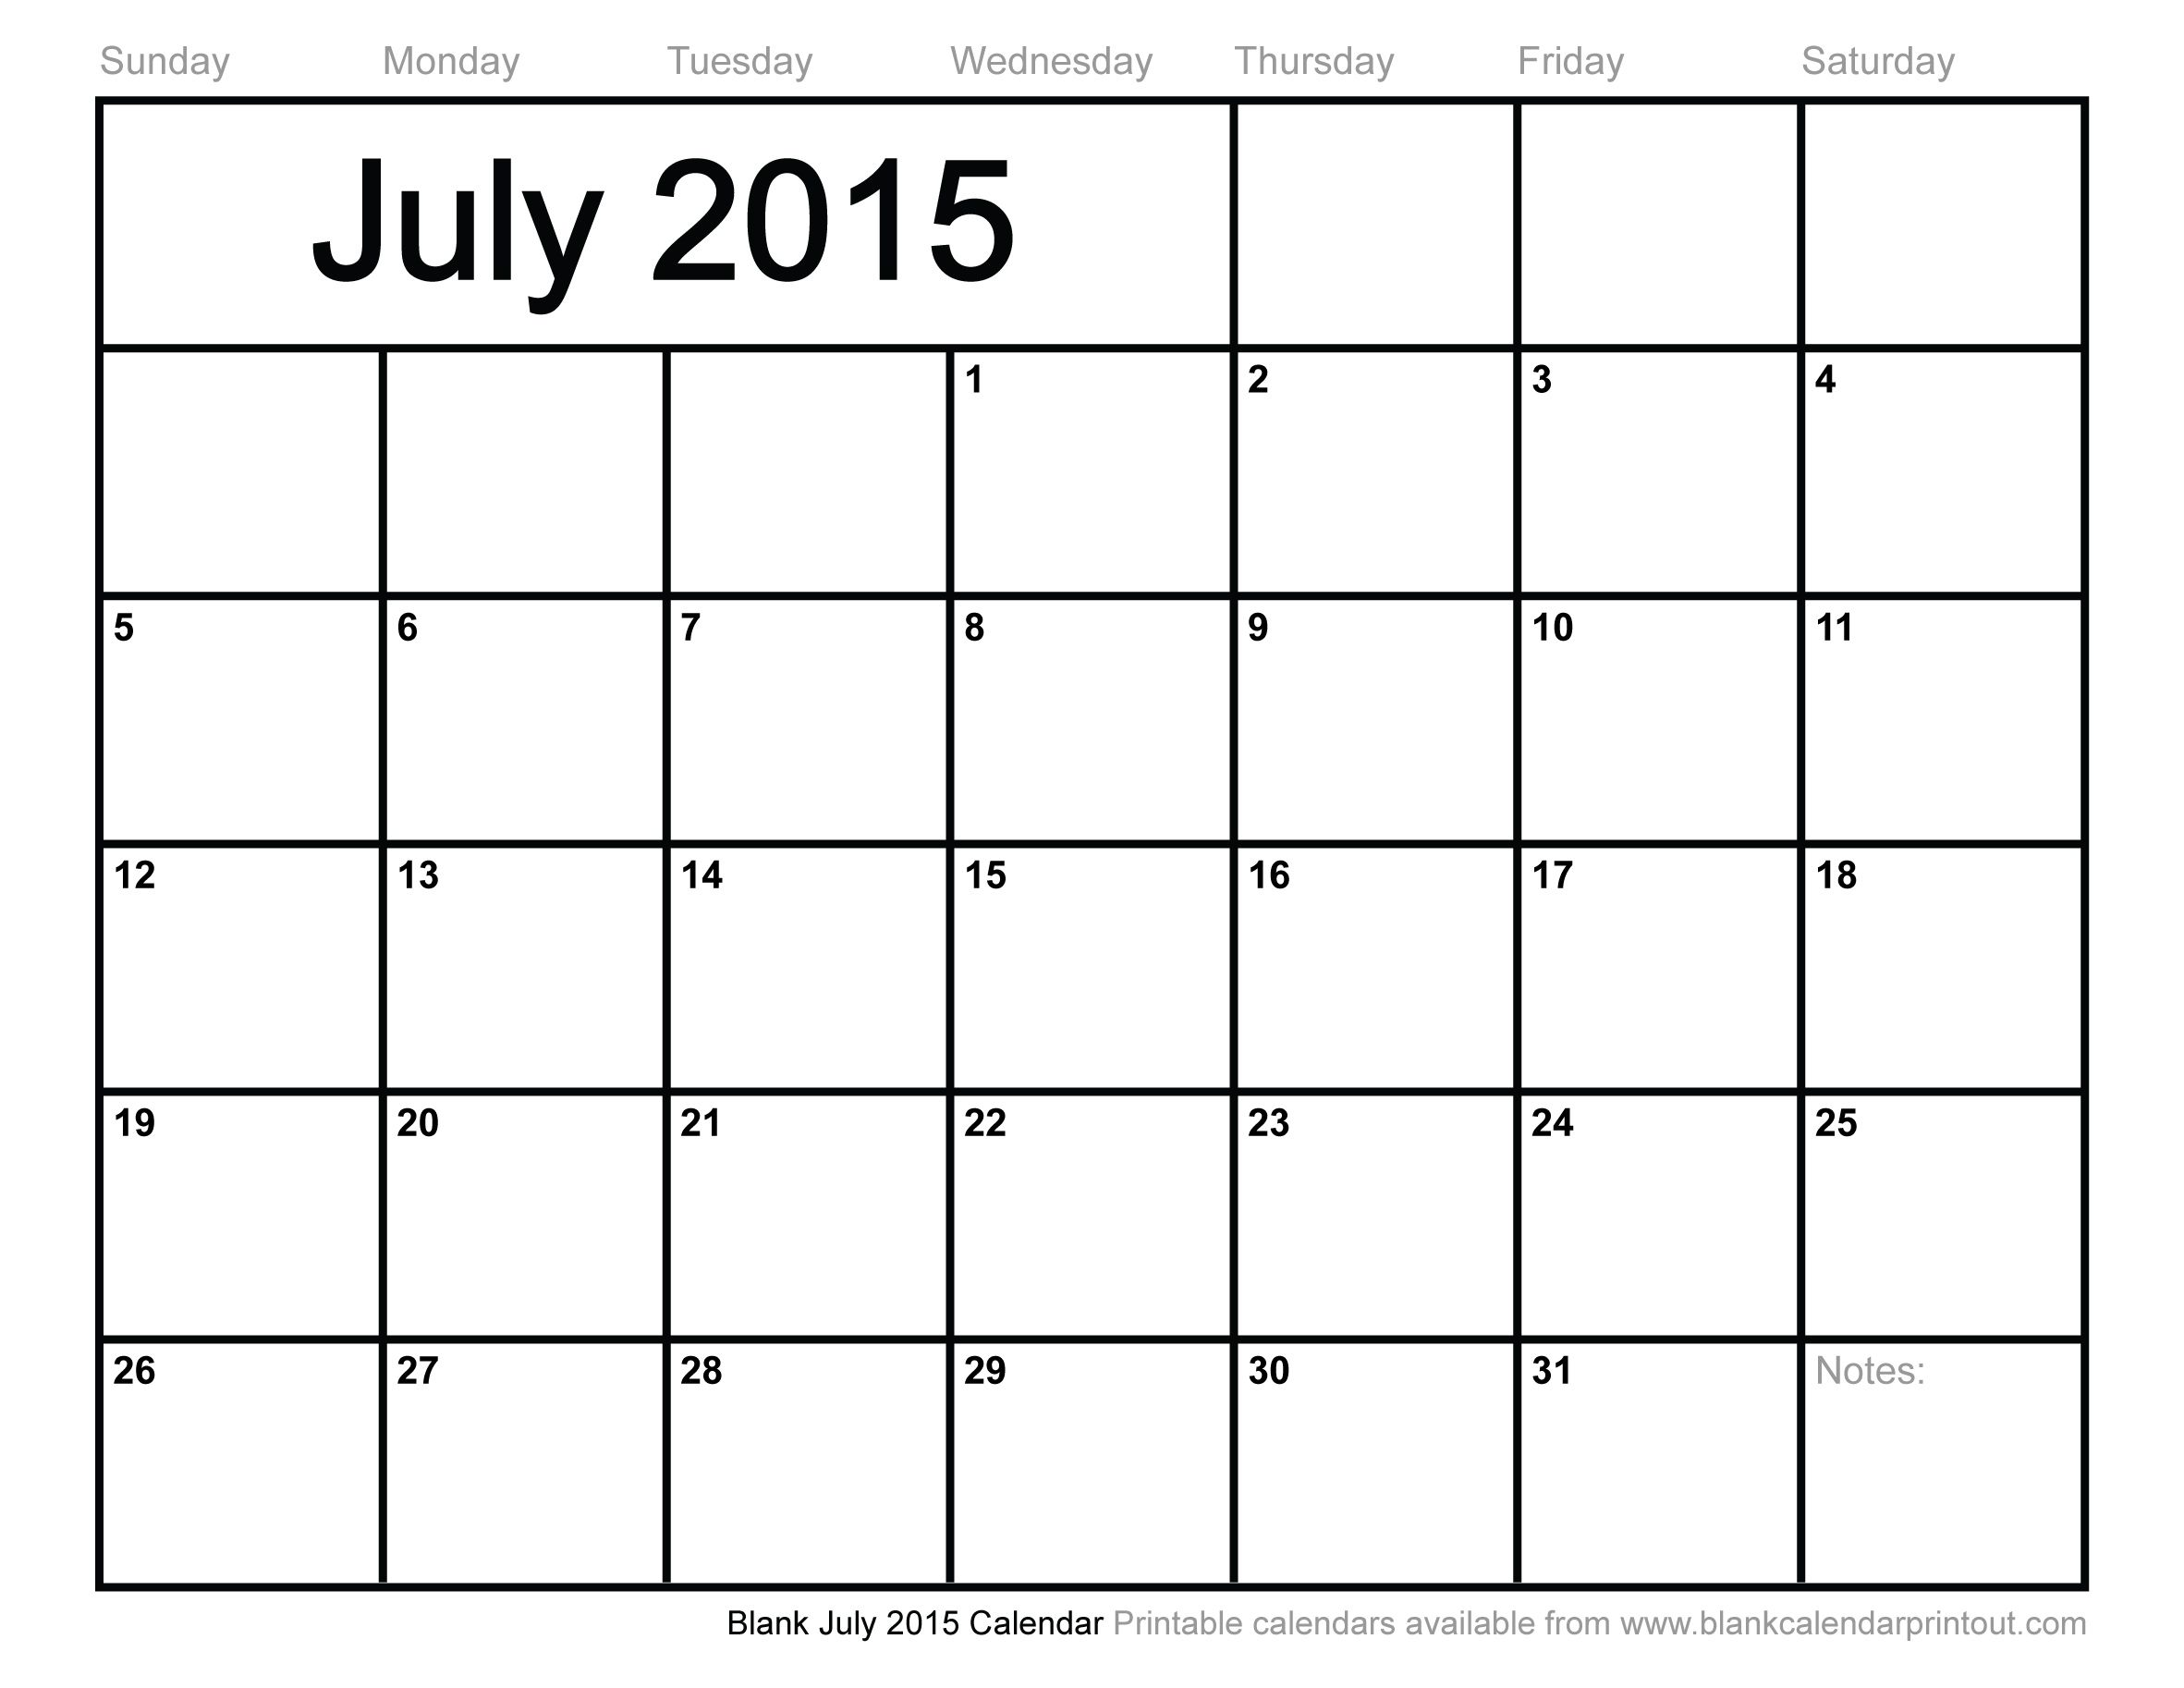 monthly calendar july 2015 Google Search Birds